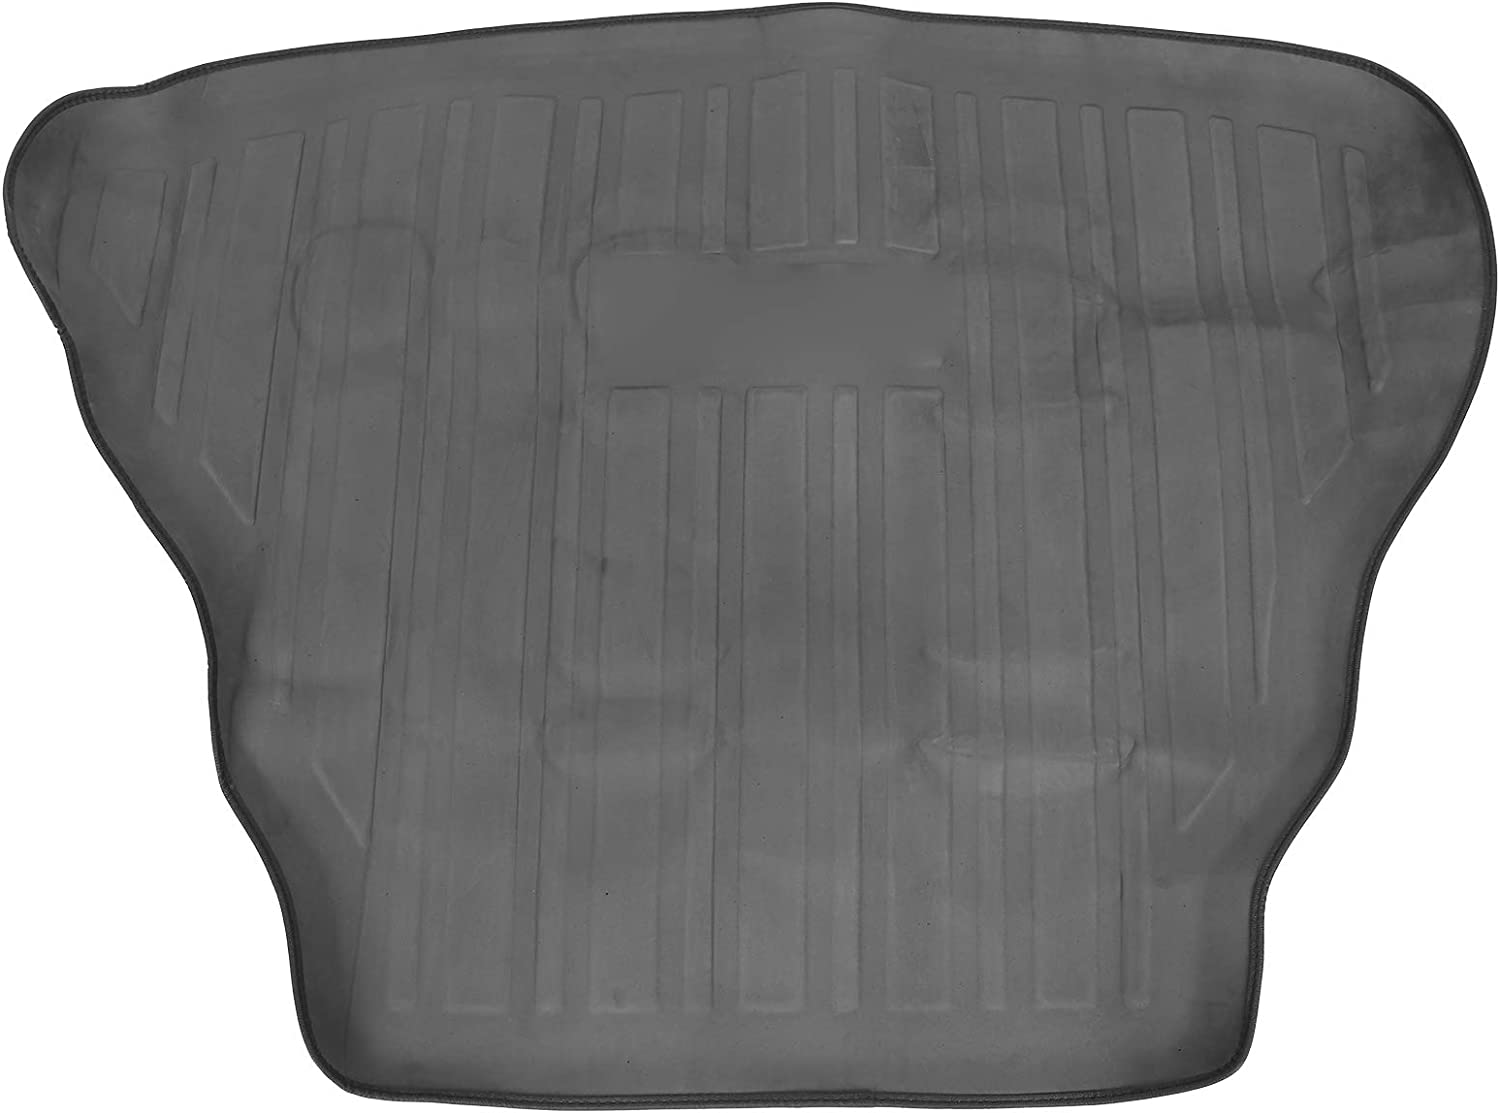 Gifts PVC Rear Trunk Floor Protecti Max 88% OFF Cargo Mat